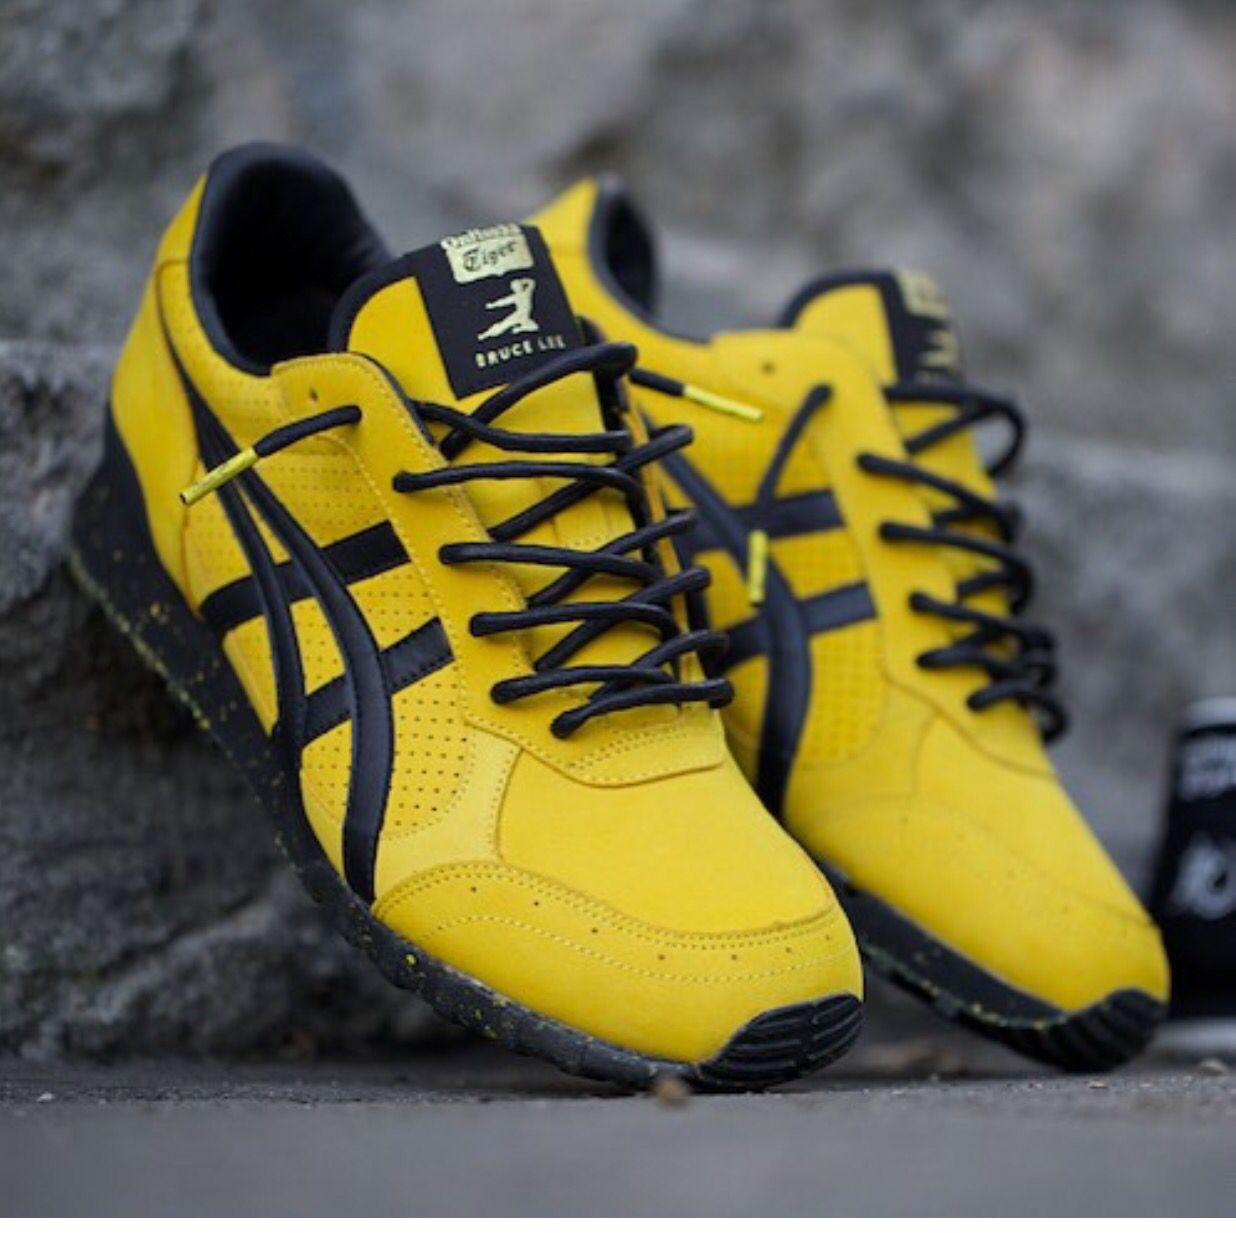 Details about Asics Tiger Gel Lyte GTX Mens Trainer Gore Tex Sneakers Loafers Shoes show original title